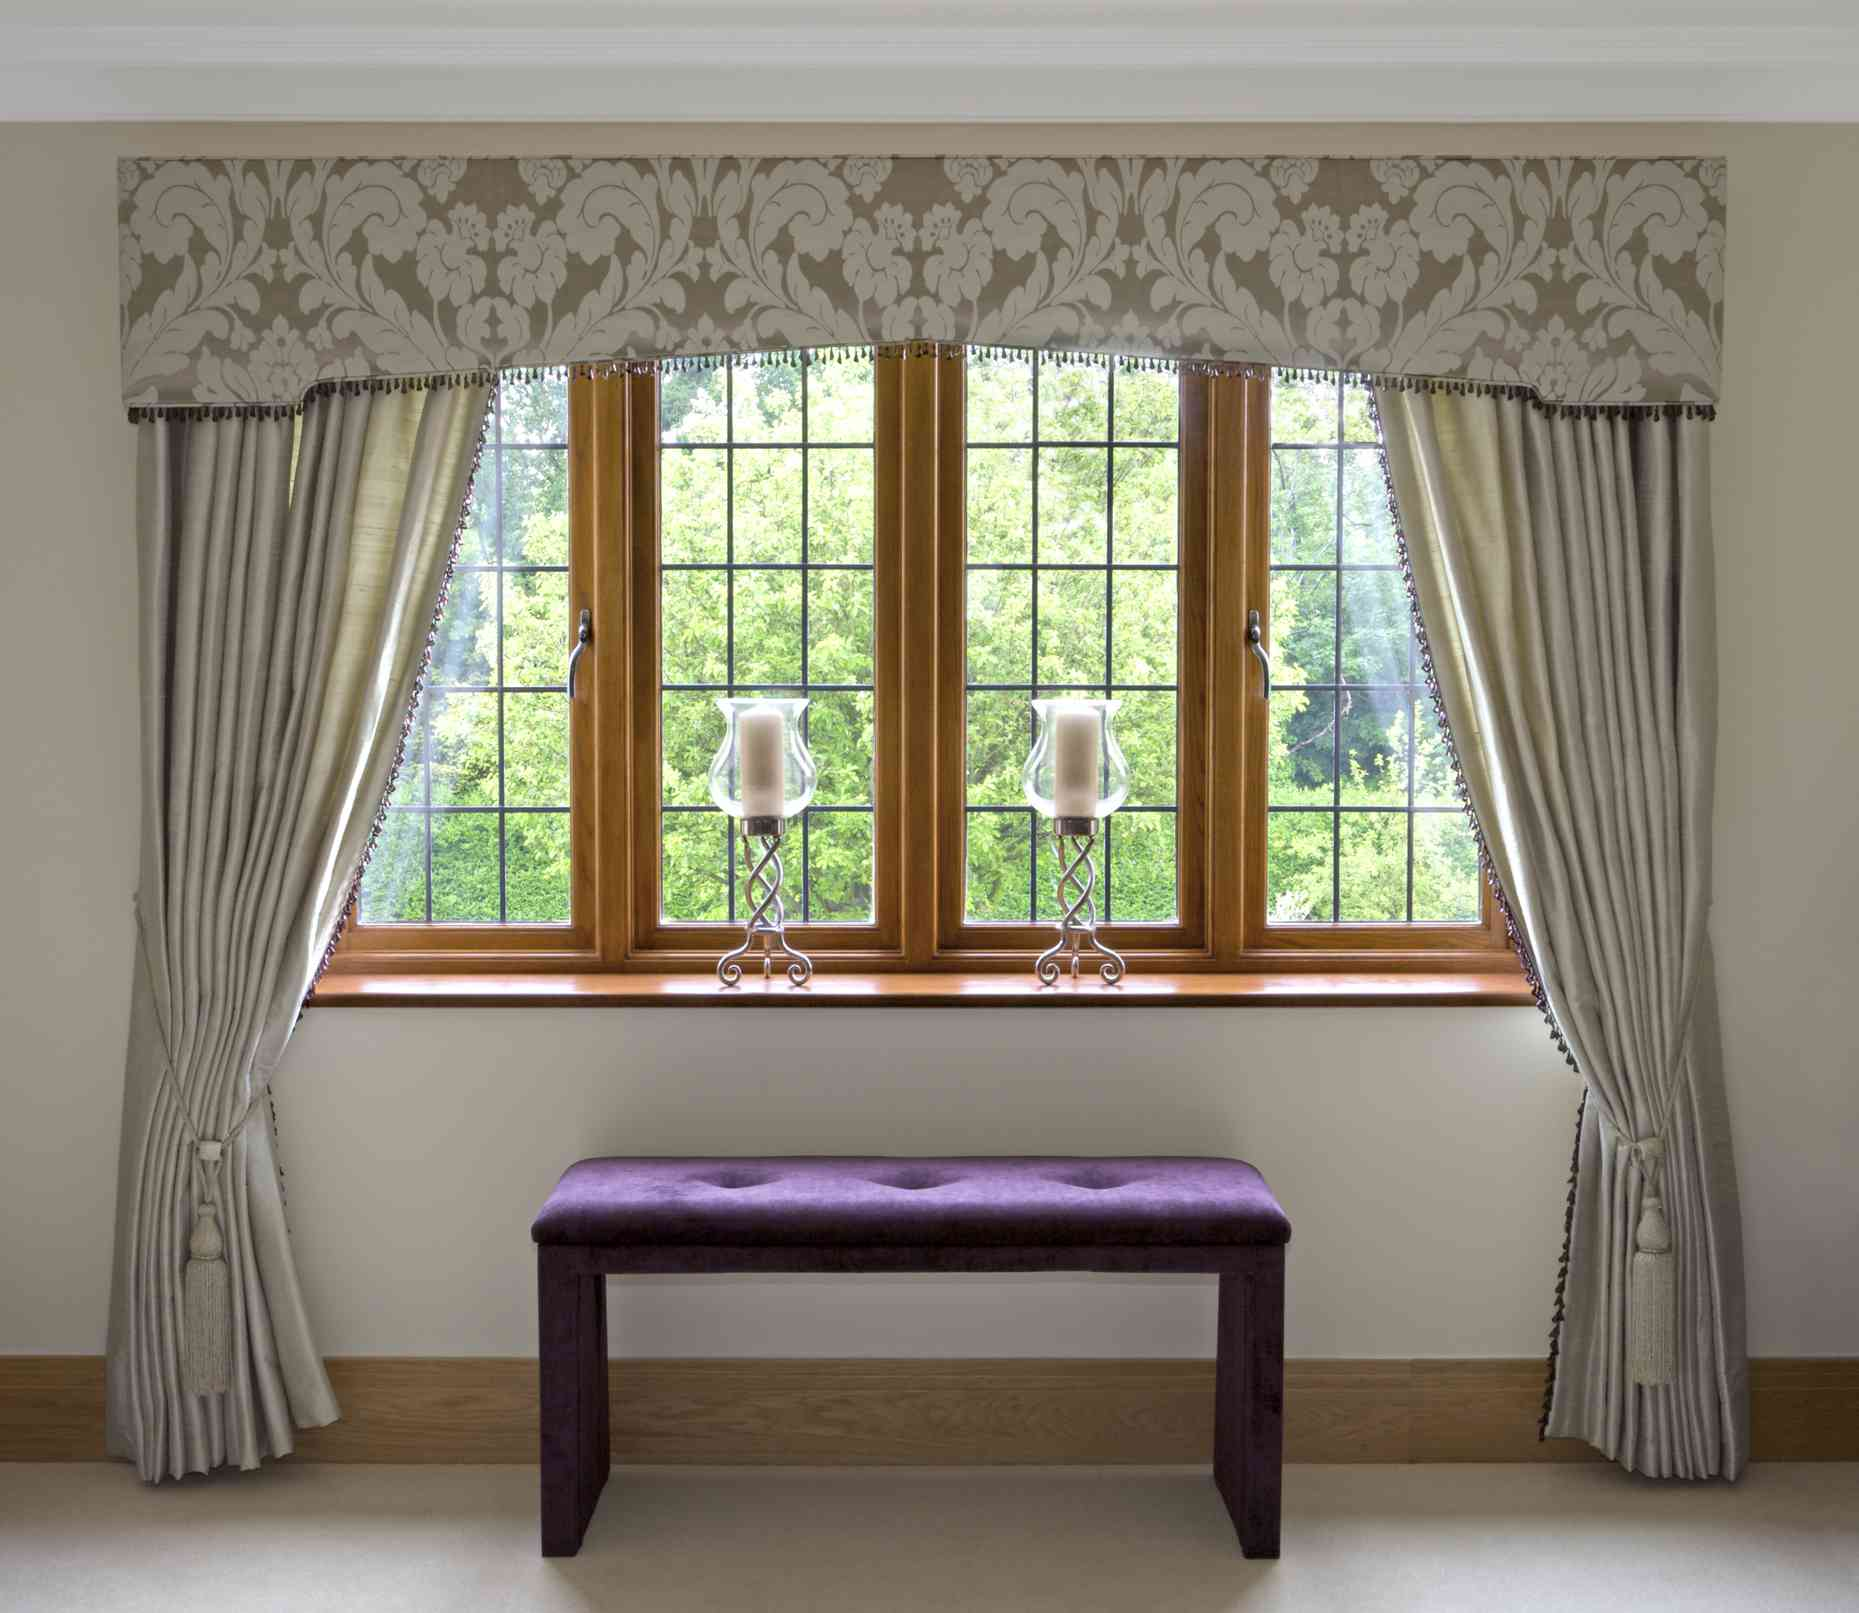 treatments and sink kitchen white curtains with valance ideas valances black window design patterns